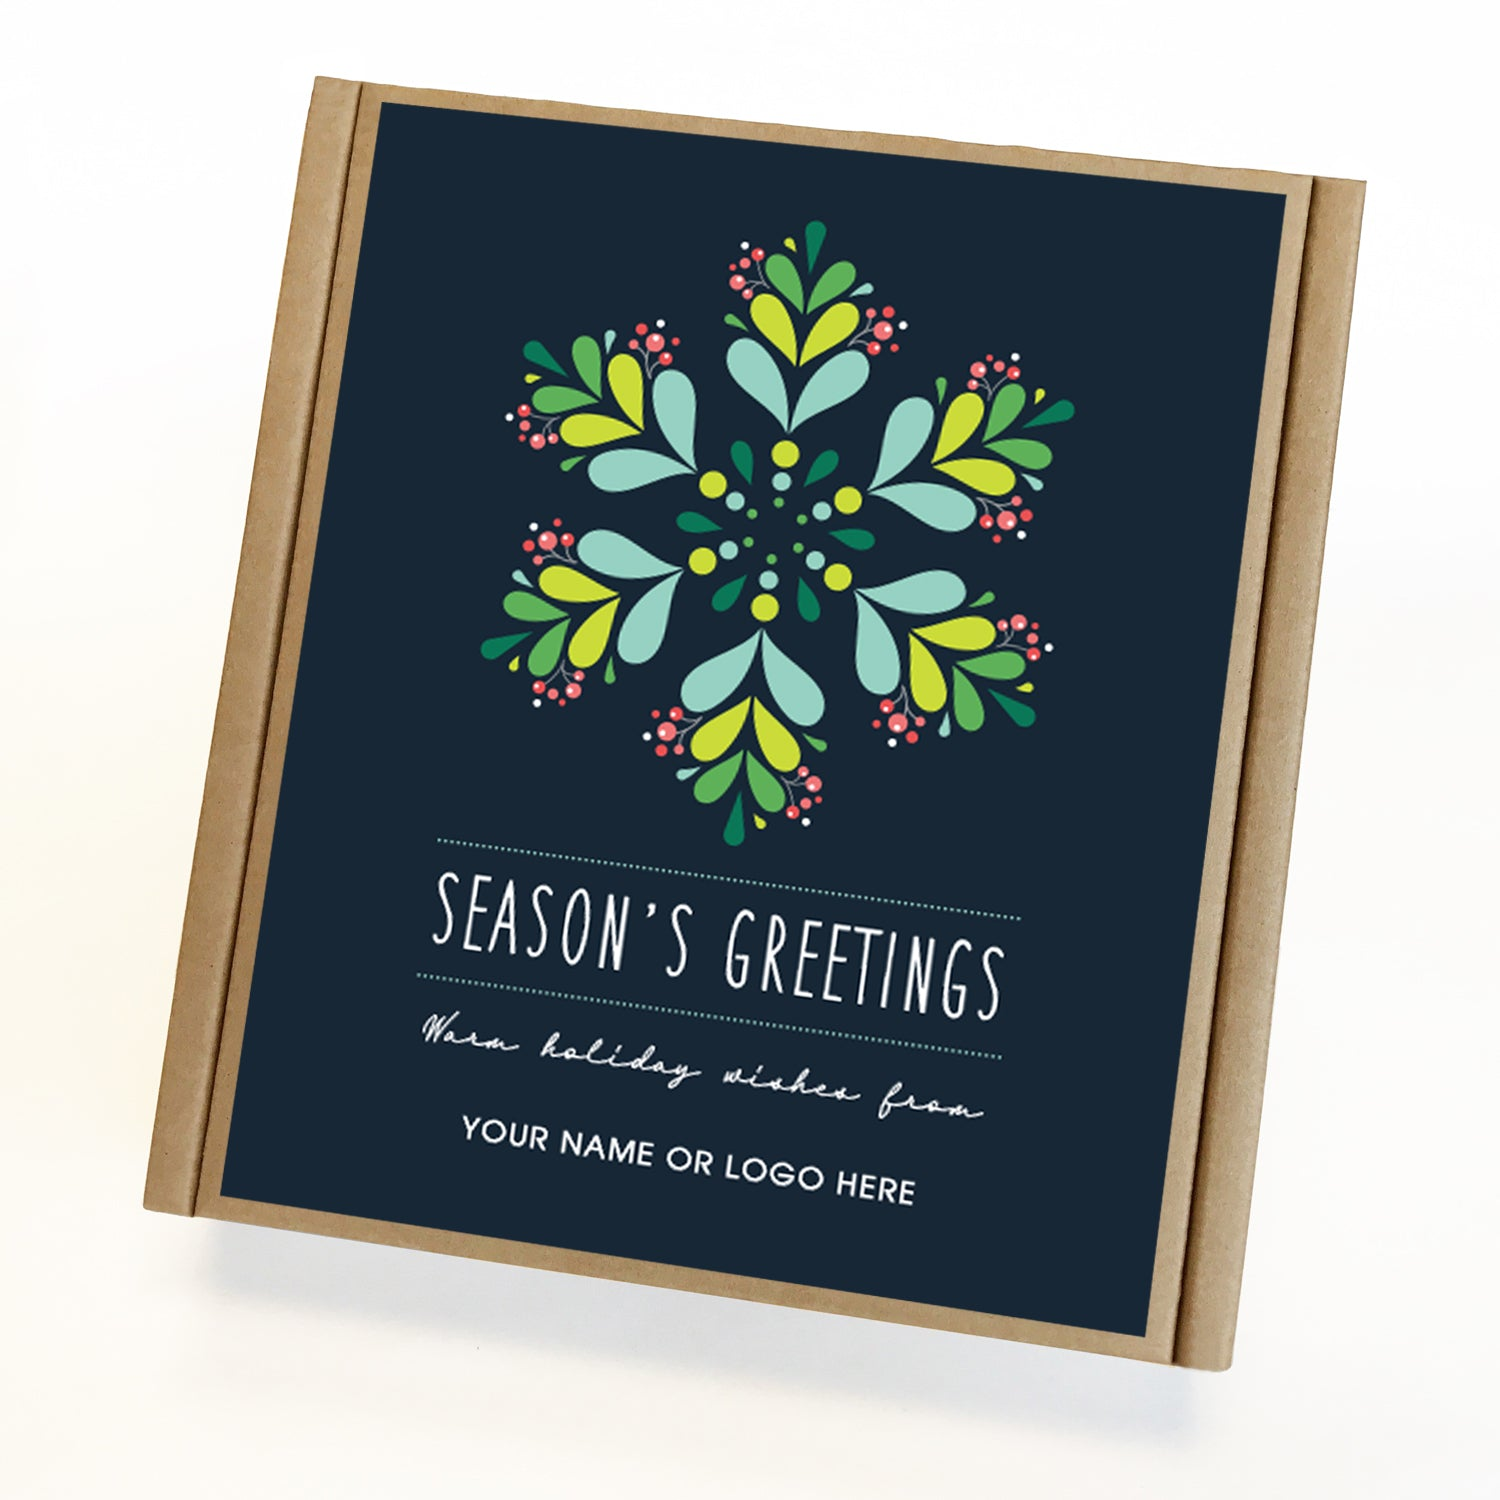 Cool Blue Seasons Greetings Caramel Eco Gift Box